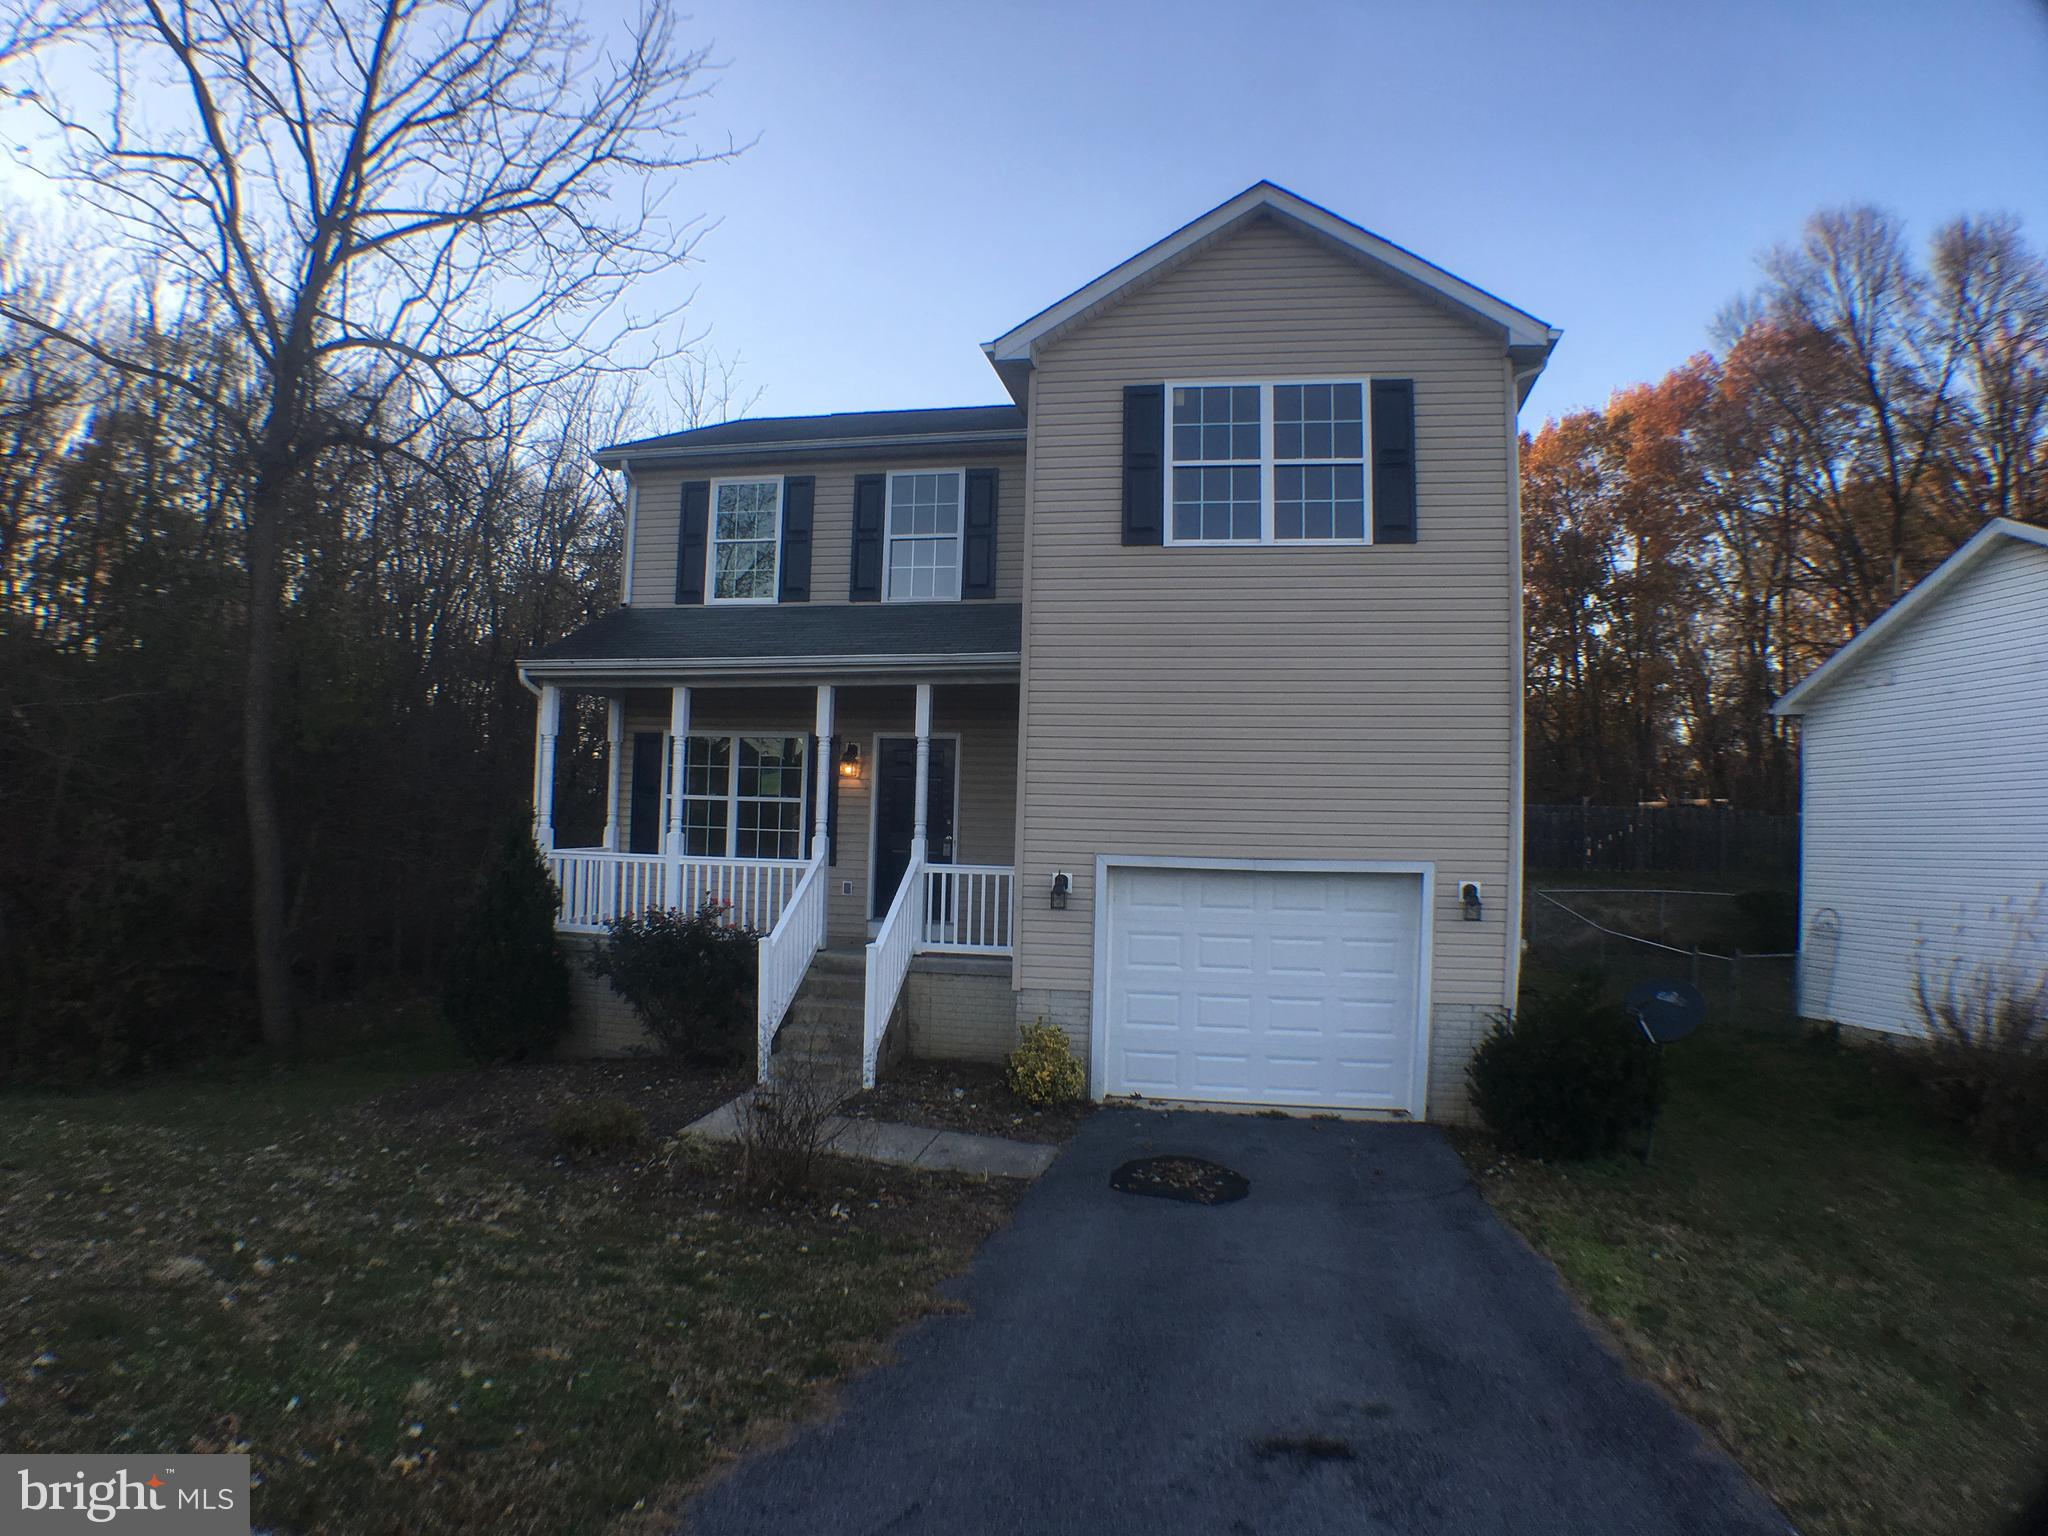 Great location! Colonial style home, newly refinished, close to Eagle School, main roads, shopping a